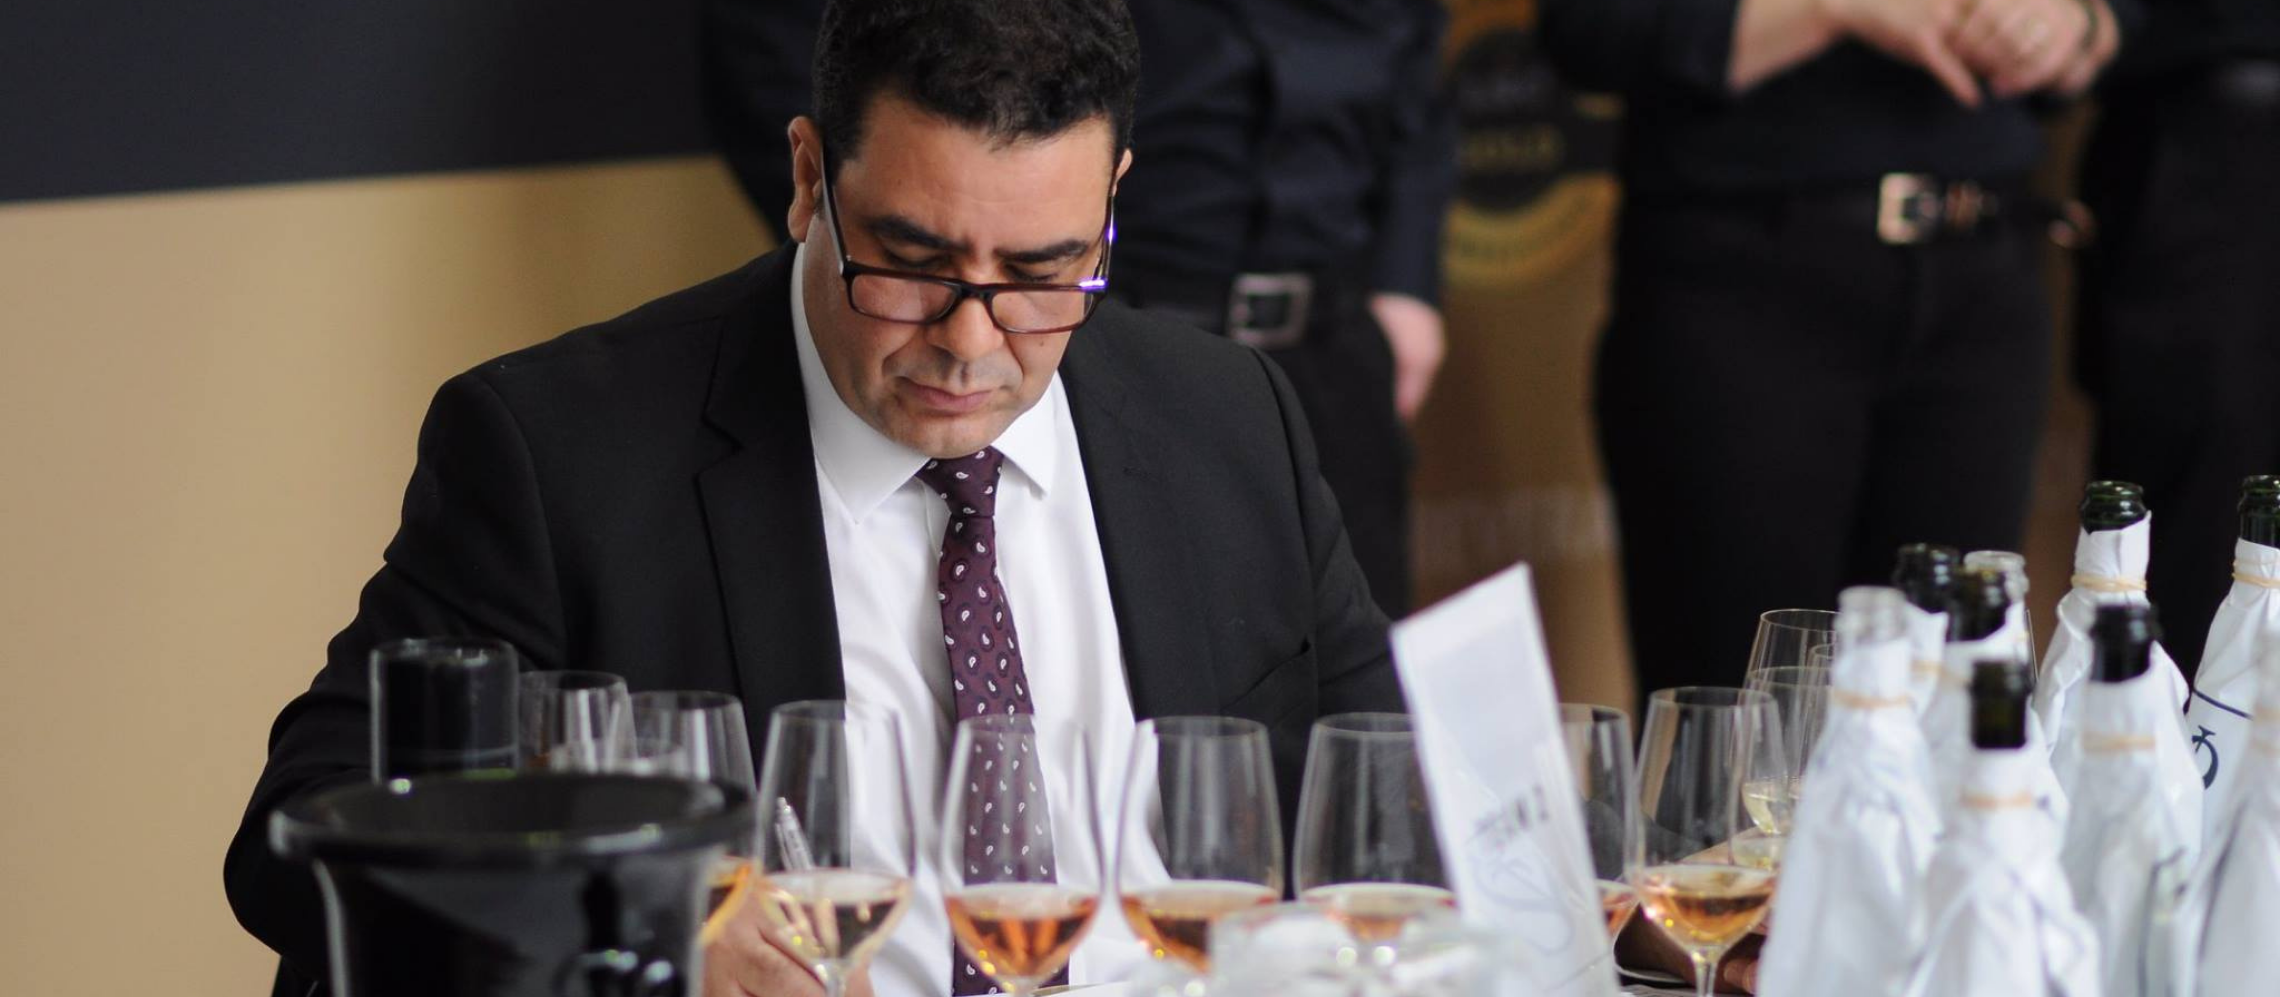 Photo for: In Conversation with Abdelilah Ait El Caid - Sommelier at COYA London